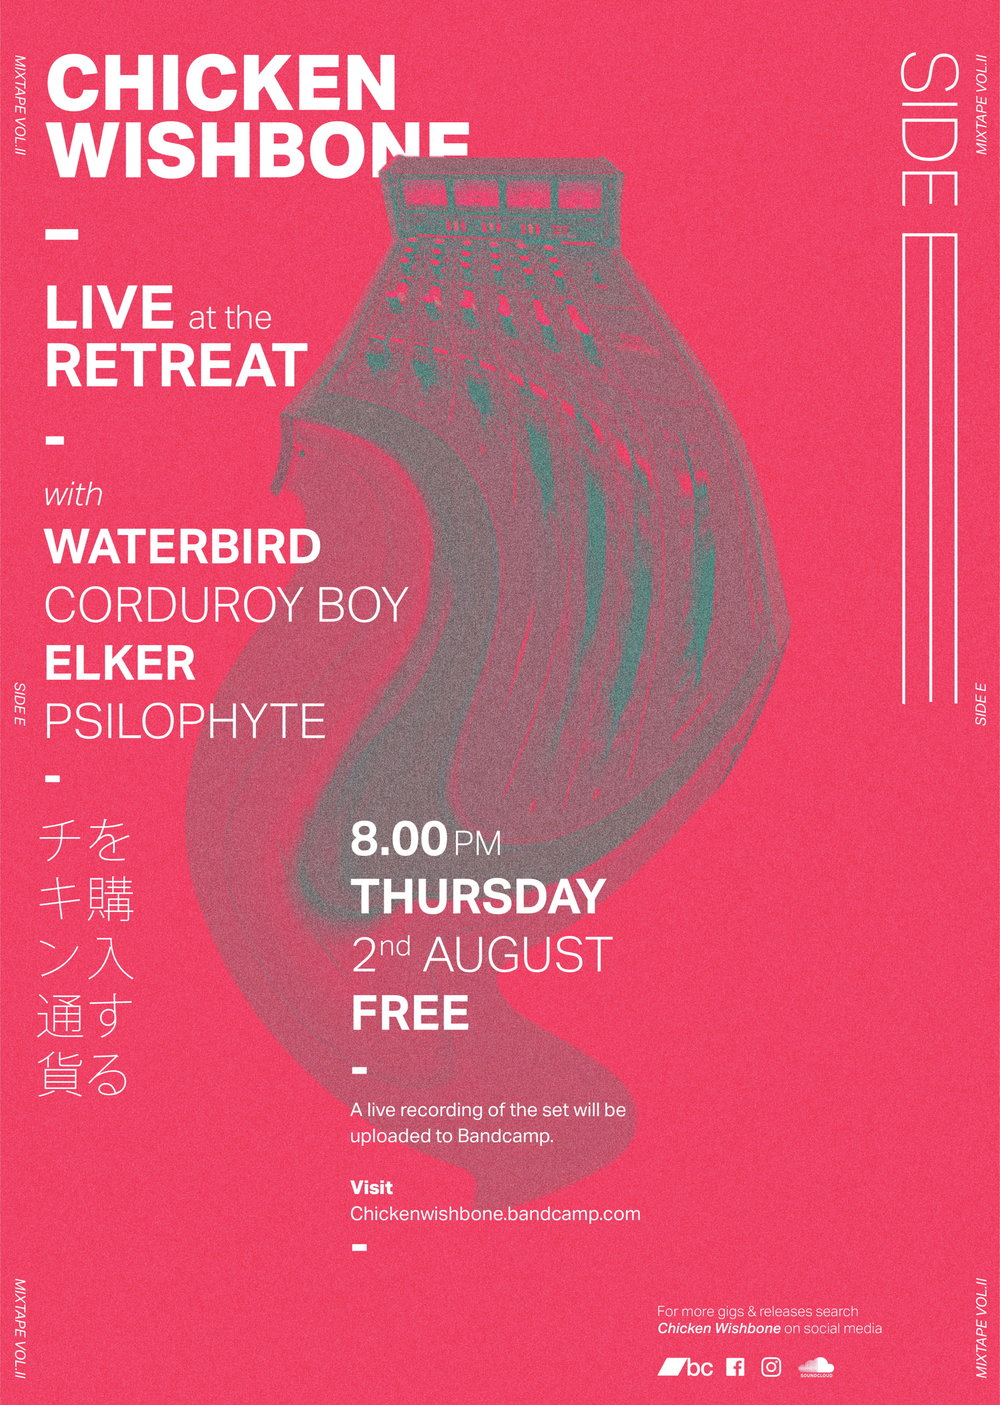 CW_poster_Retreat_RGB_with_noise_v2-1.jpg